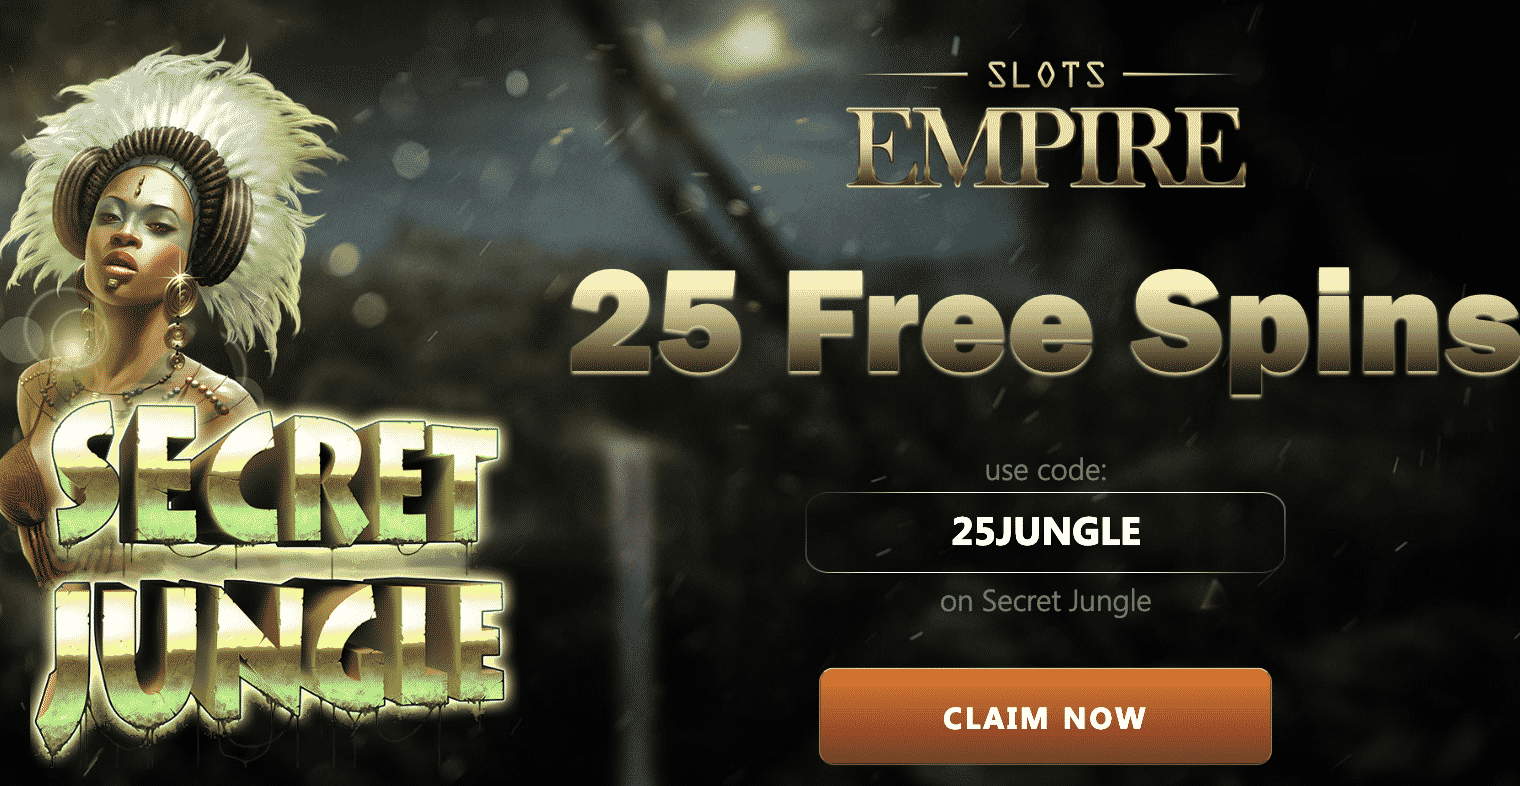 ★ Get Your Registration 25 Free Spins on Secret Jungle at Slots Empire